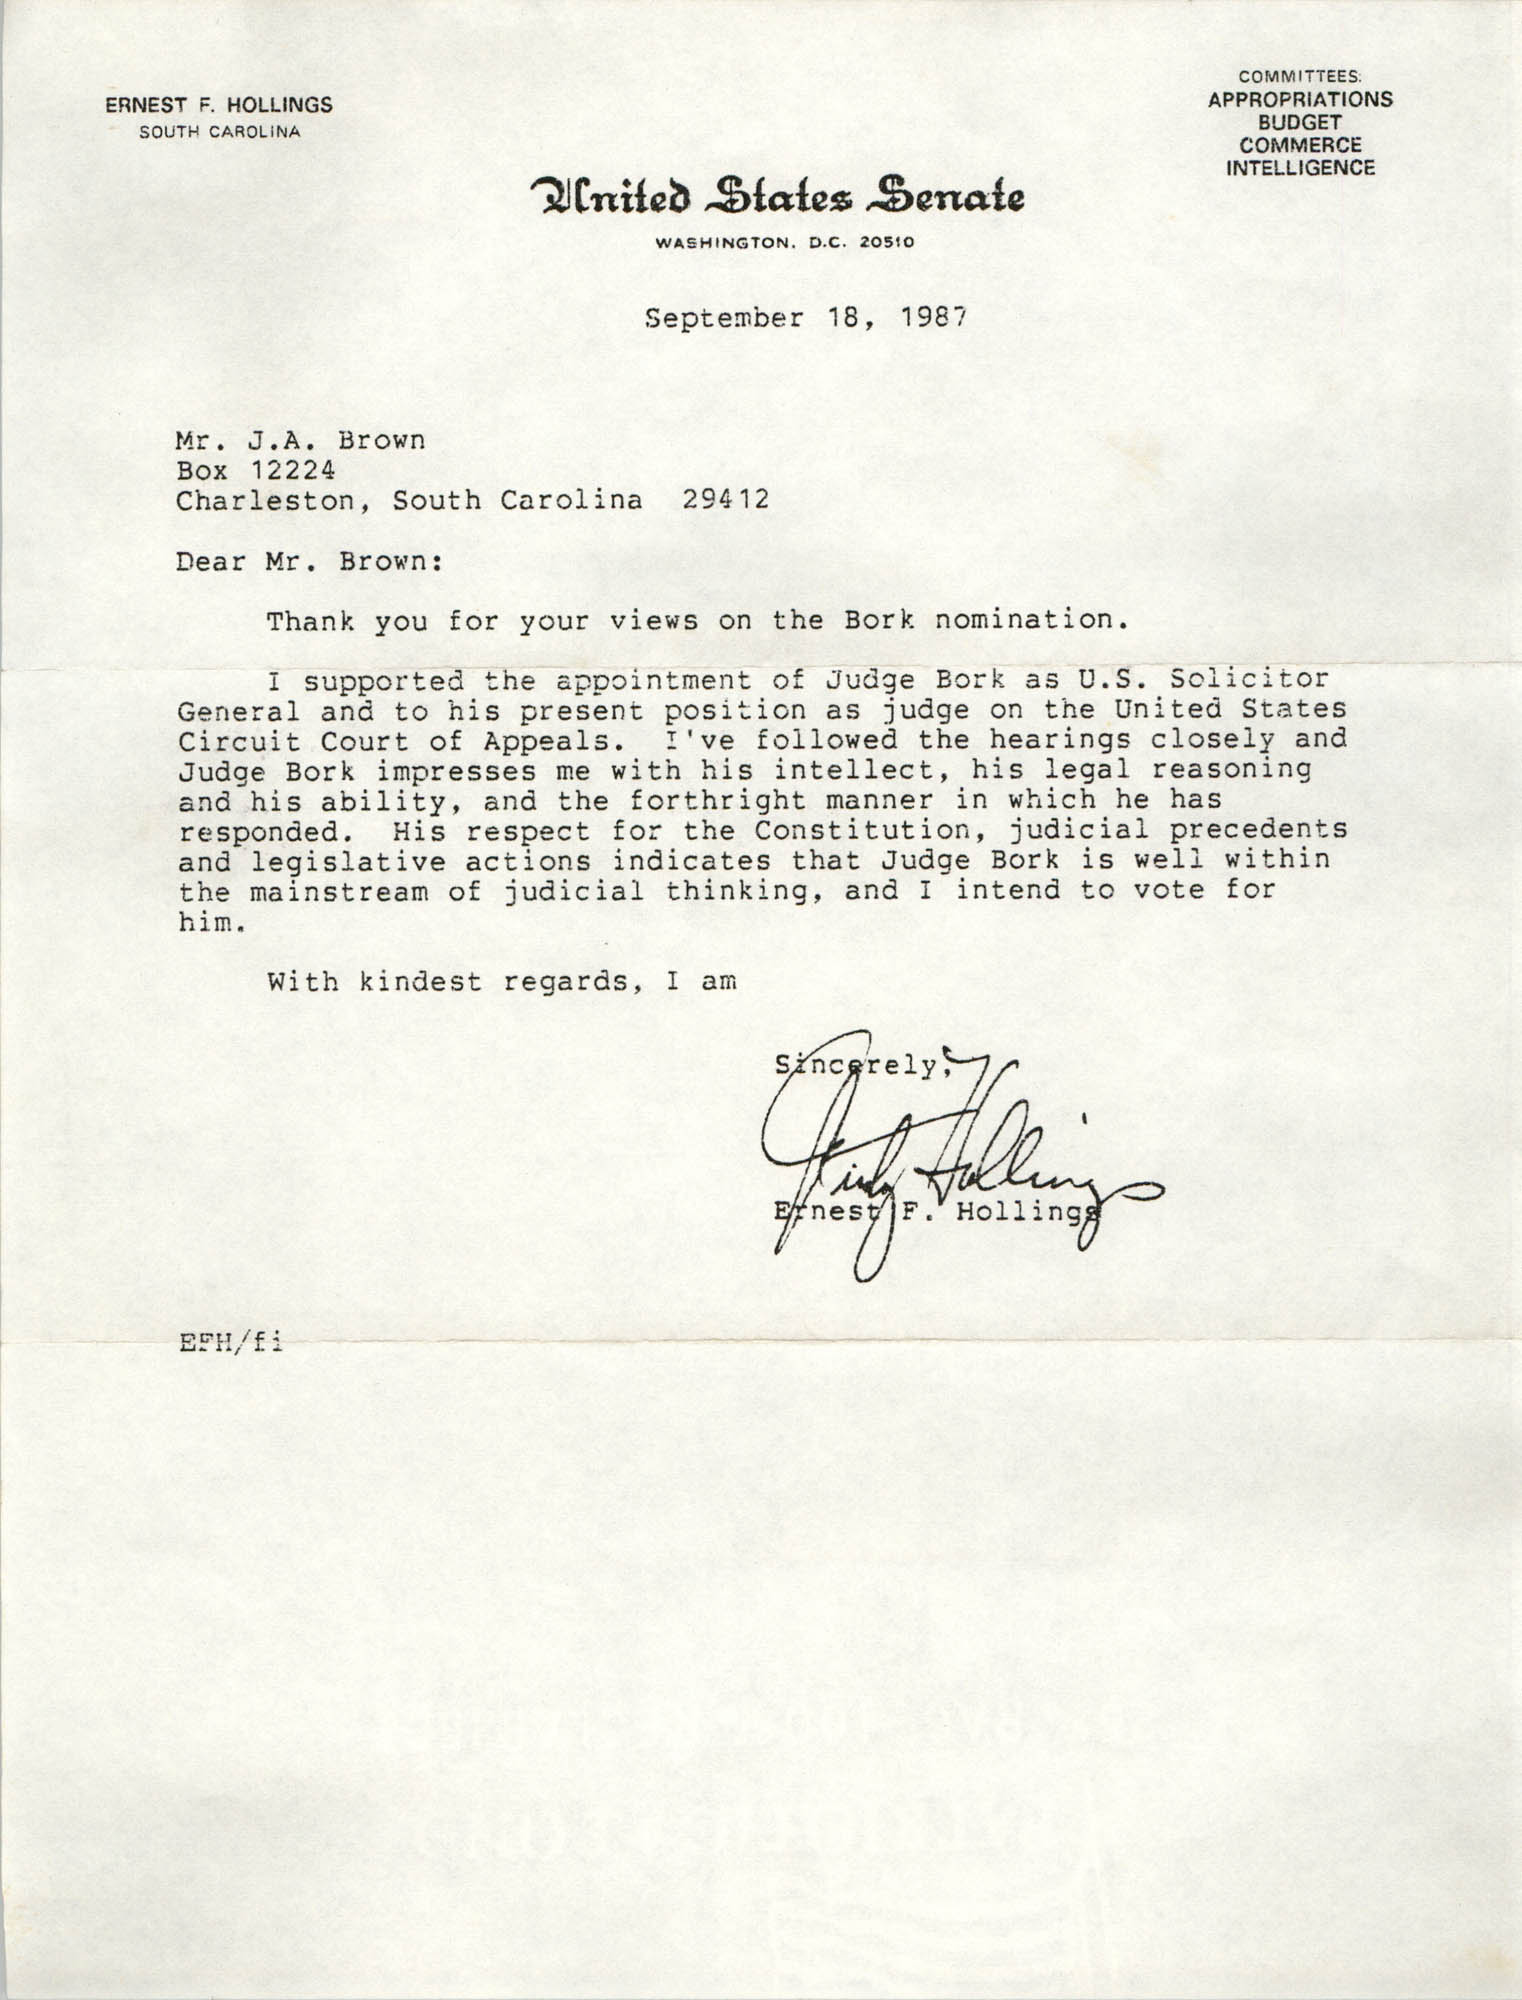 Letter from Ernest F. Hollings to J. Arthur Brown, September 18, 1987